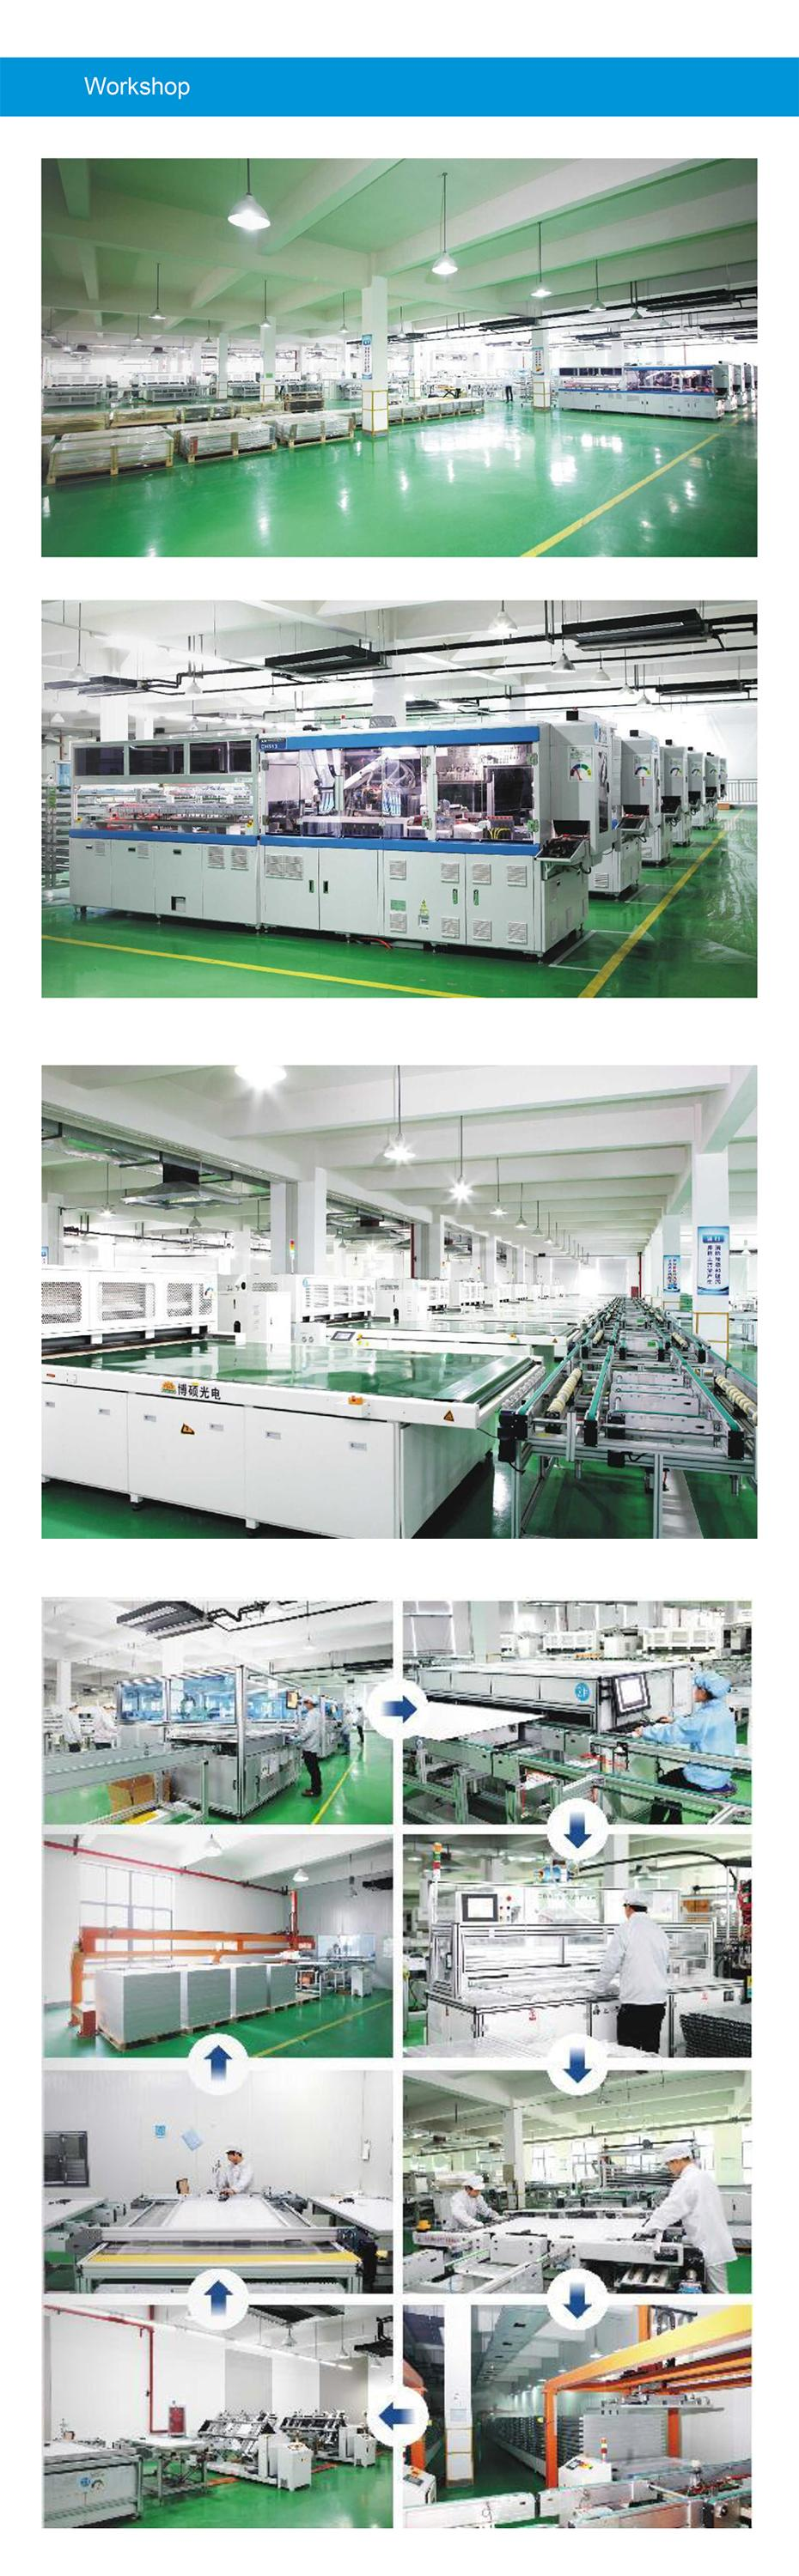 310w solar panel price, 310w solar panel manufacturers in china